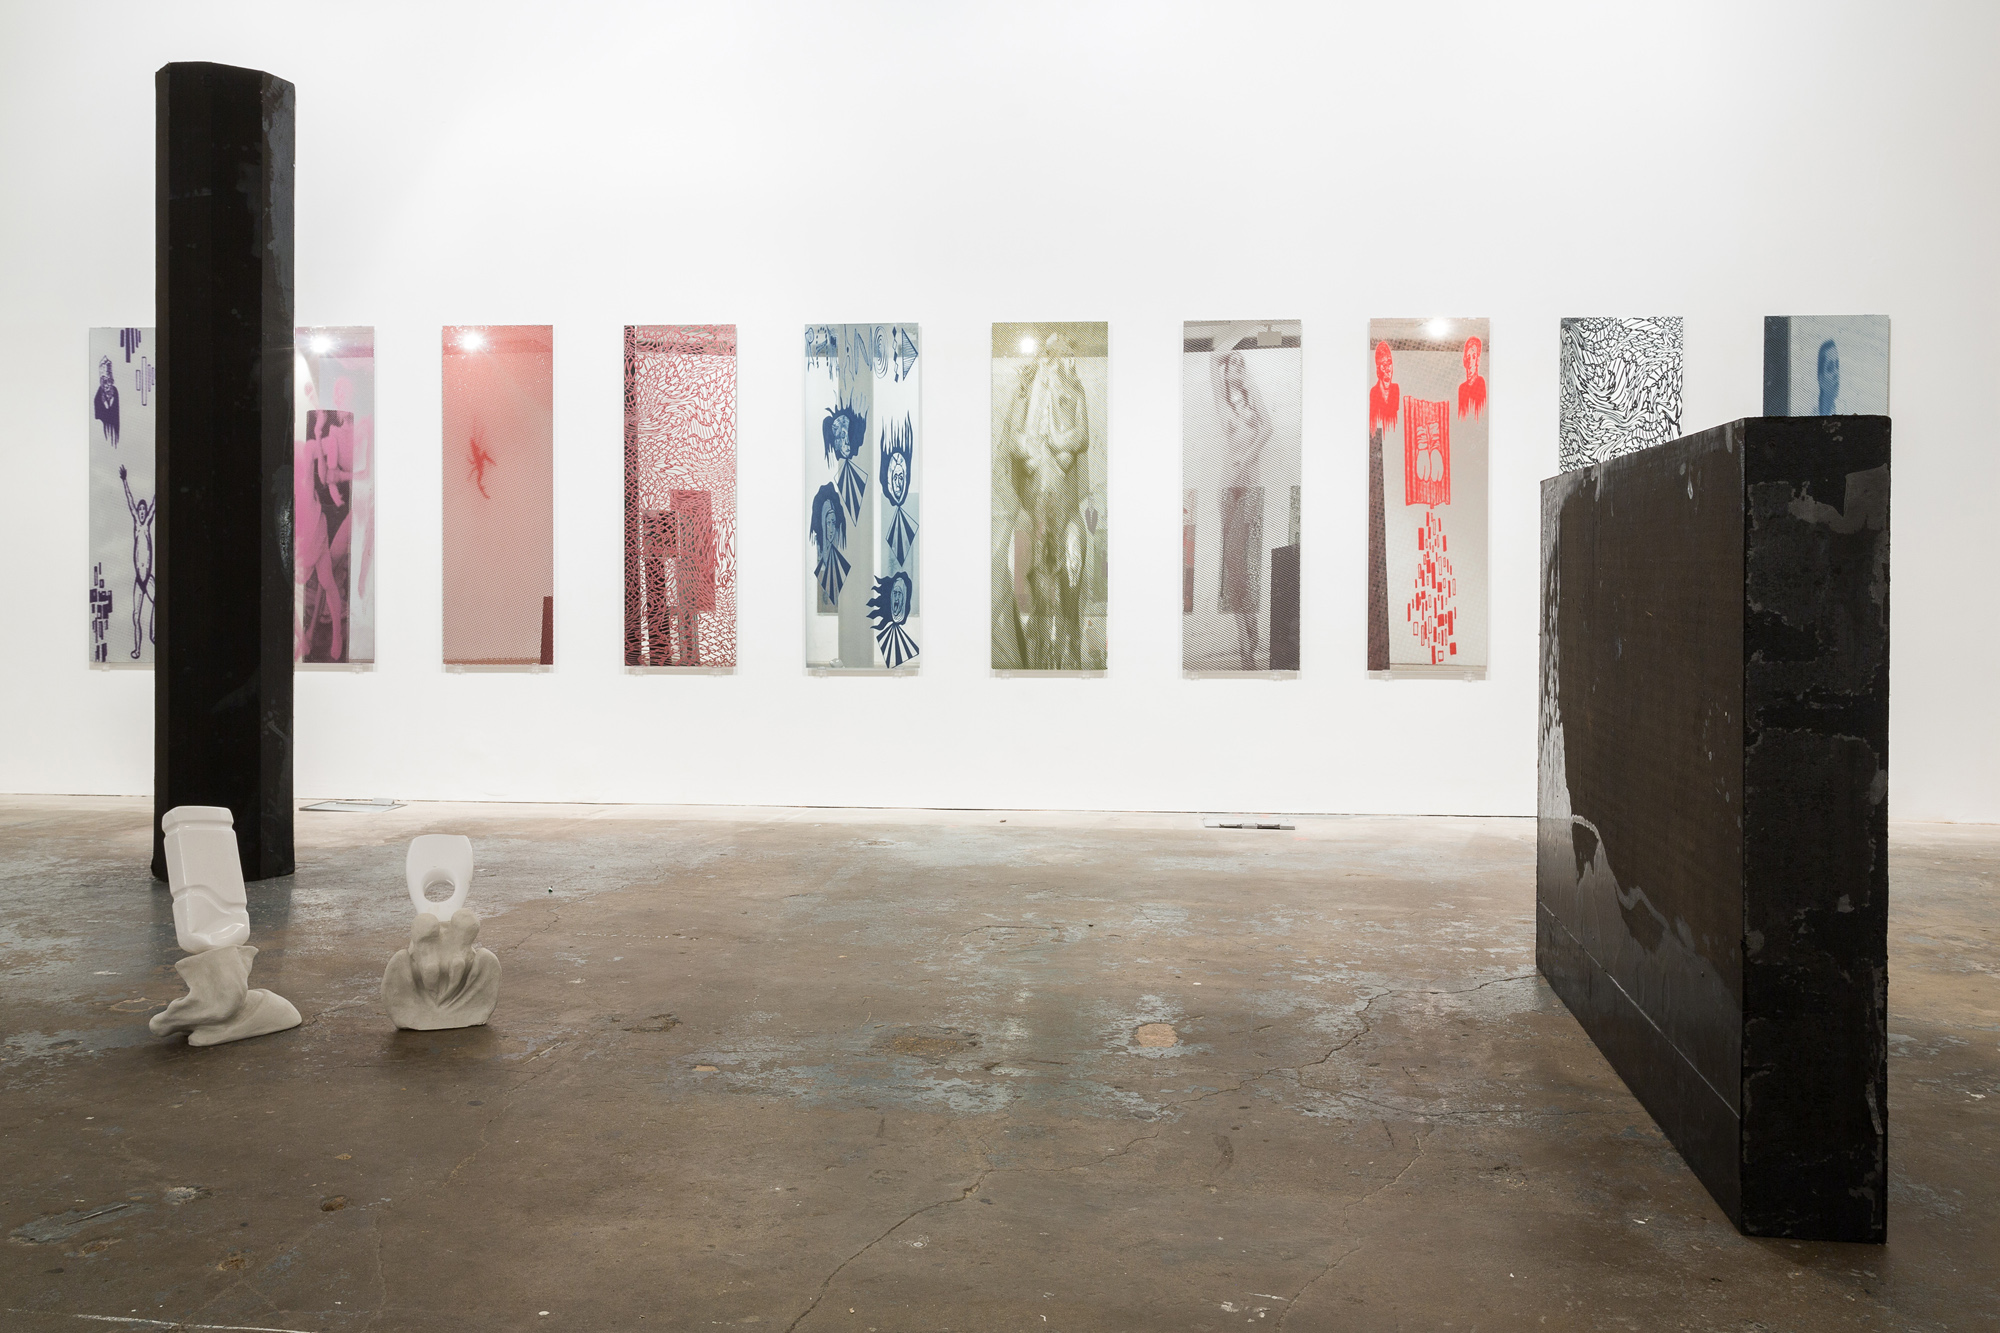 One step away from further Hell, 2015, Lena Henke and Marie Karlberg, Vilma Gold, London, installation view. One step away from further Hell , Lena Henke and Marie Karlberg